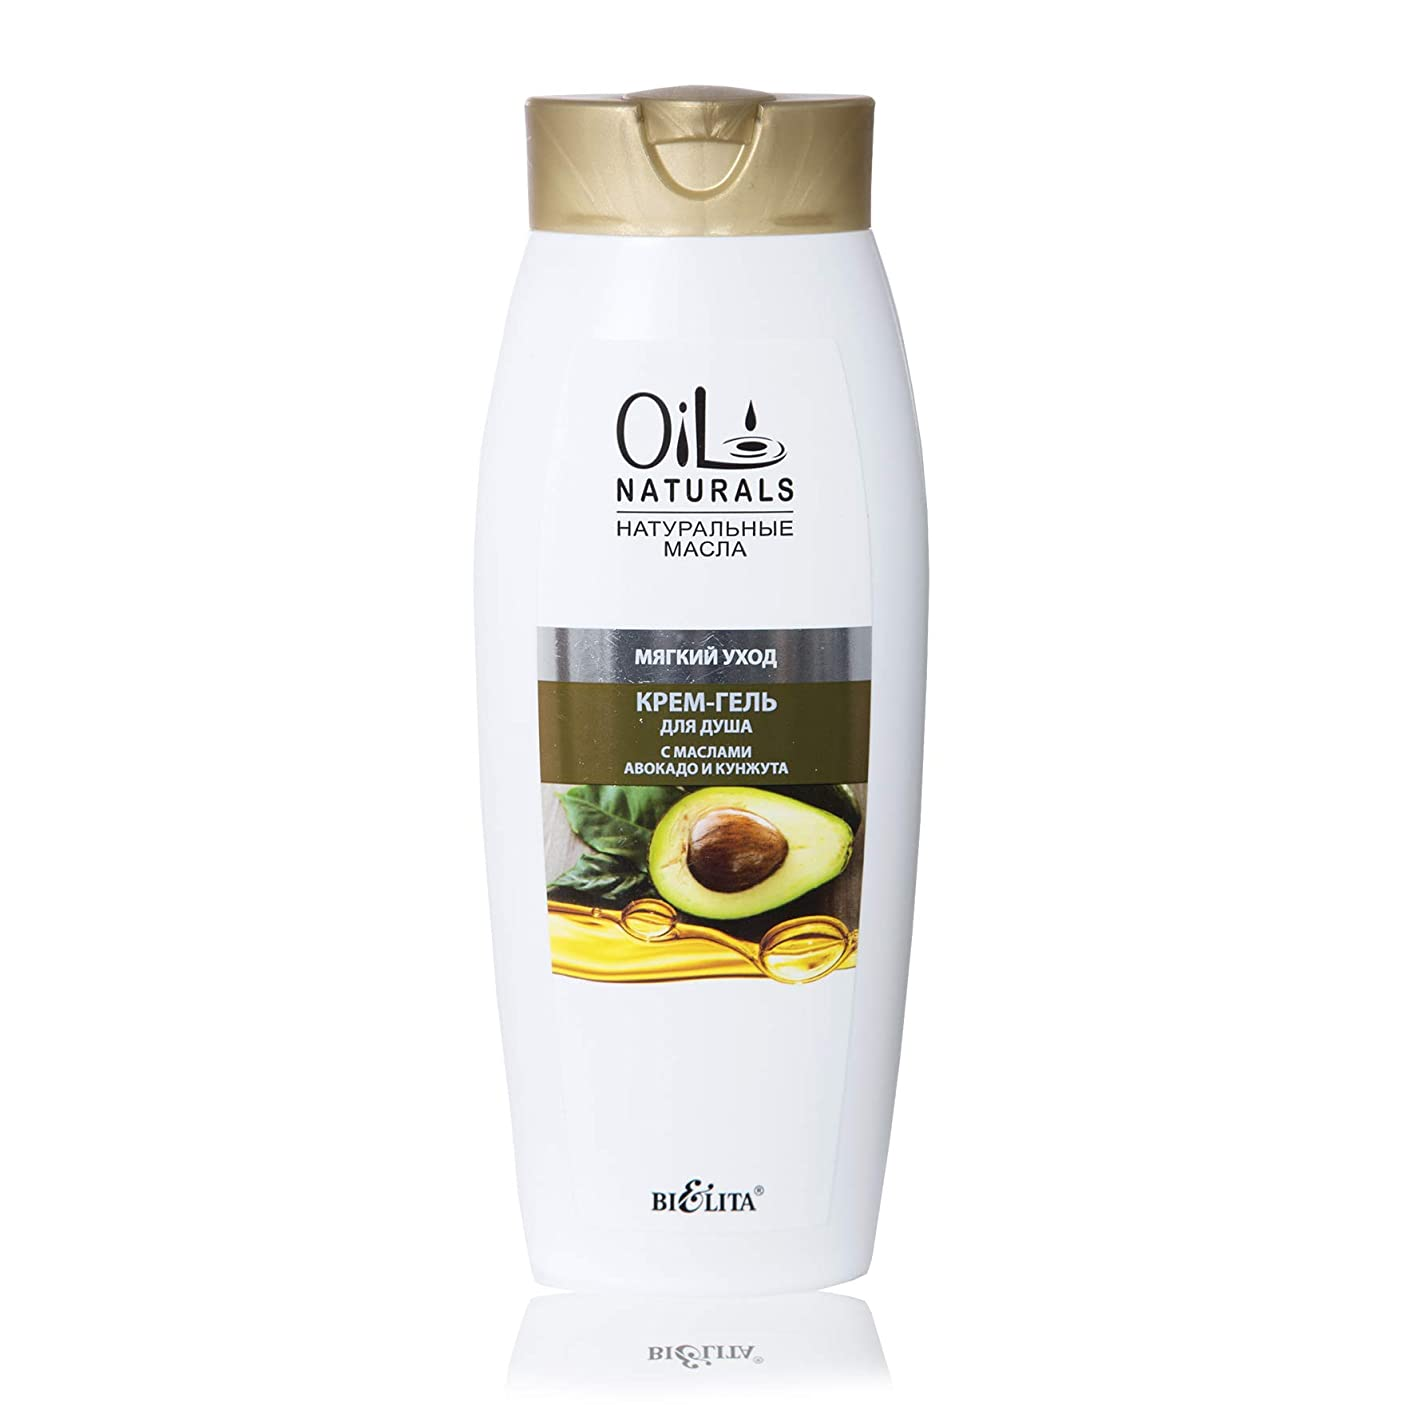 陸軍コードレス屋内でBielita & Vitex Oil Naturals Line | Soft Care Creamy Shower Gel, 430 ml | Avocado Oil, Silk Proteins, Sesame Oil, Vitamins